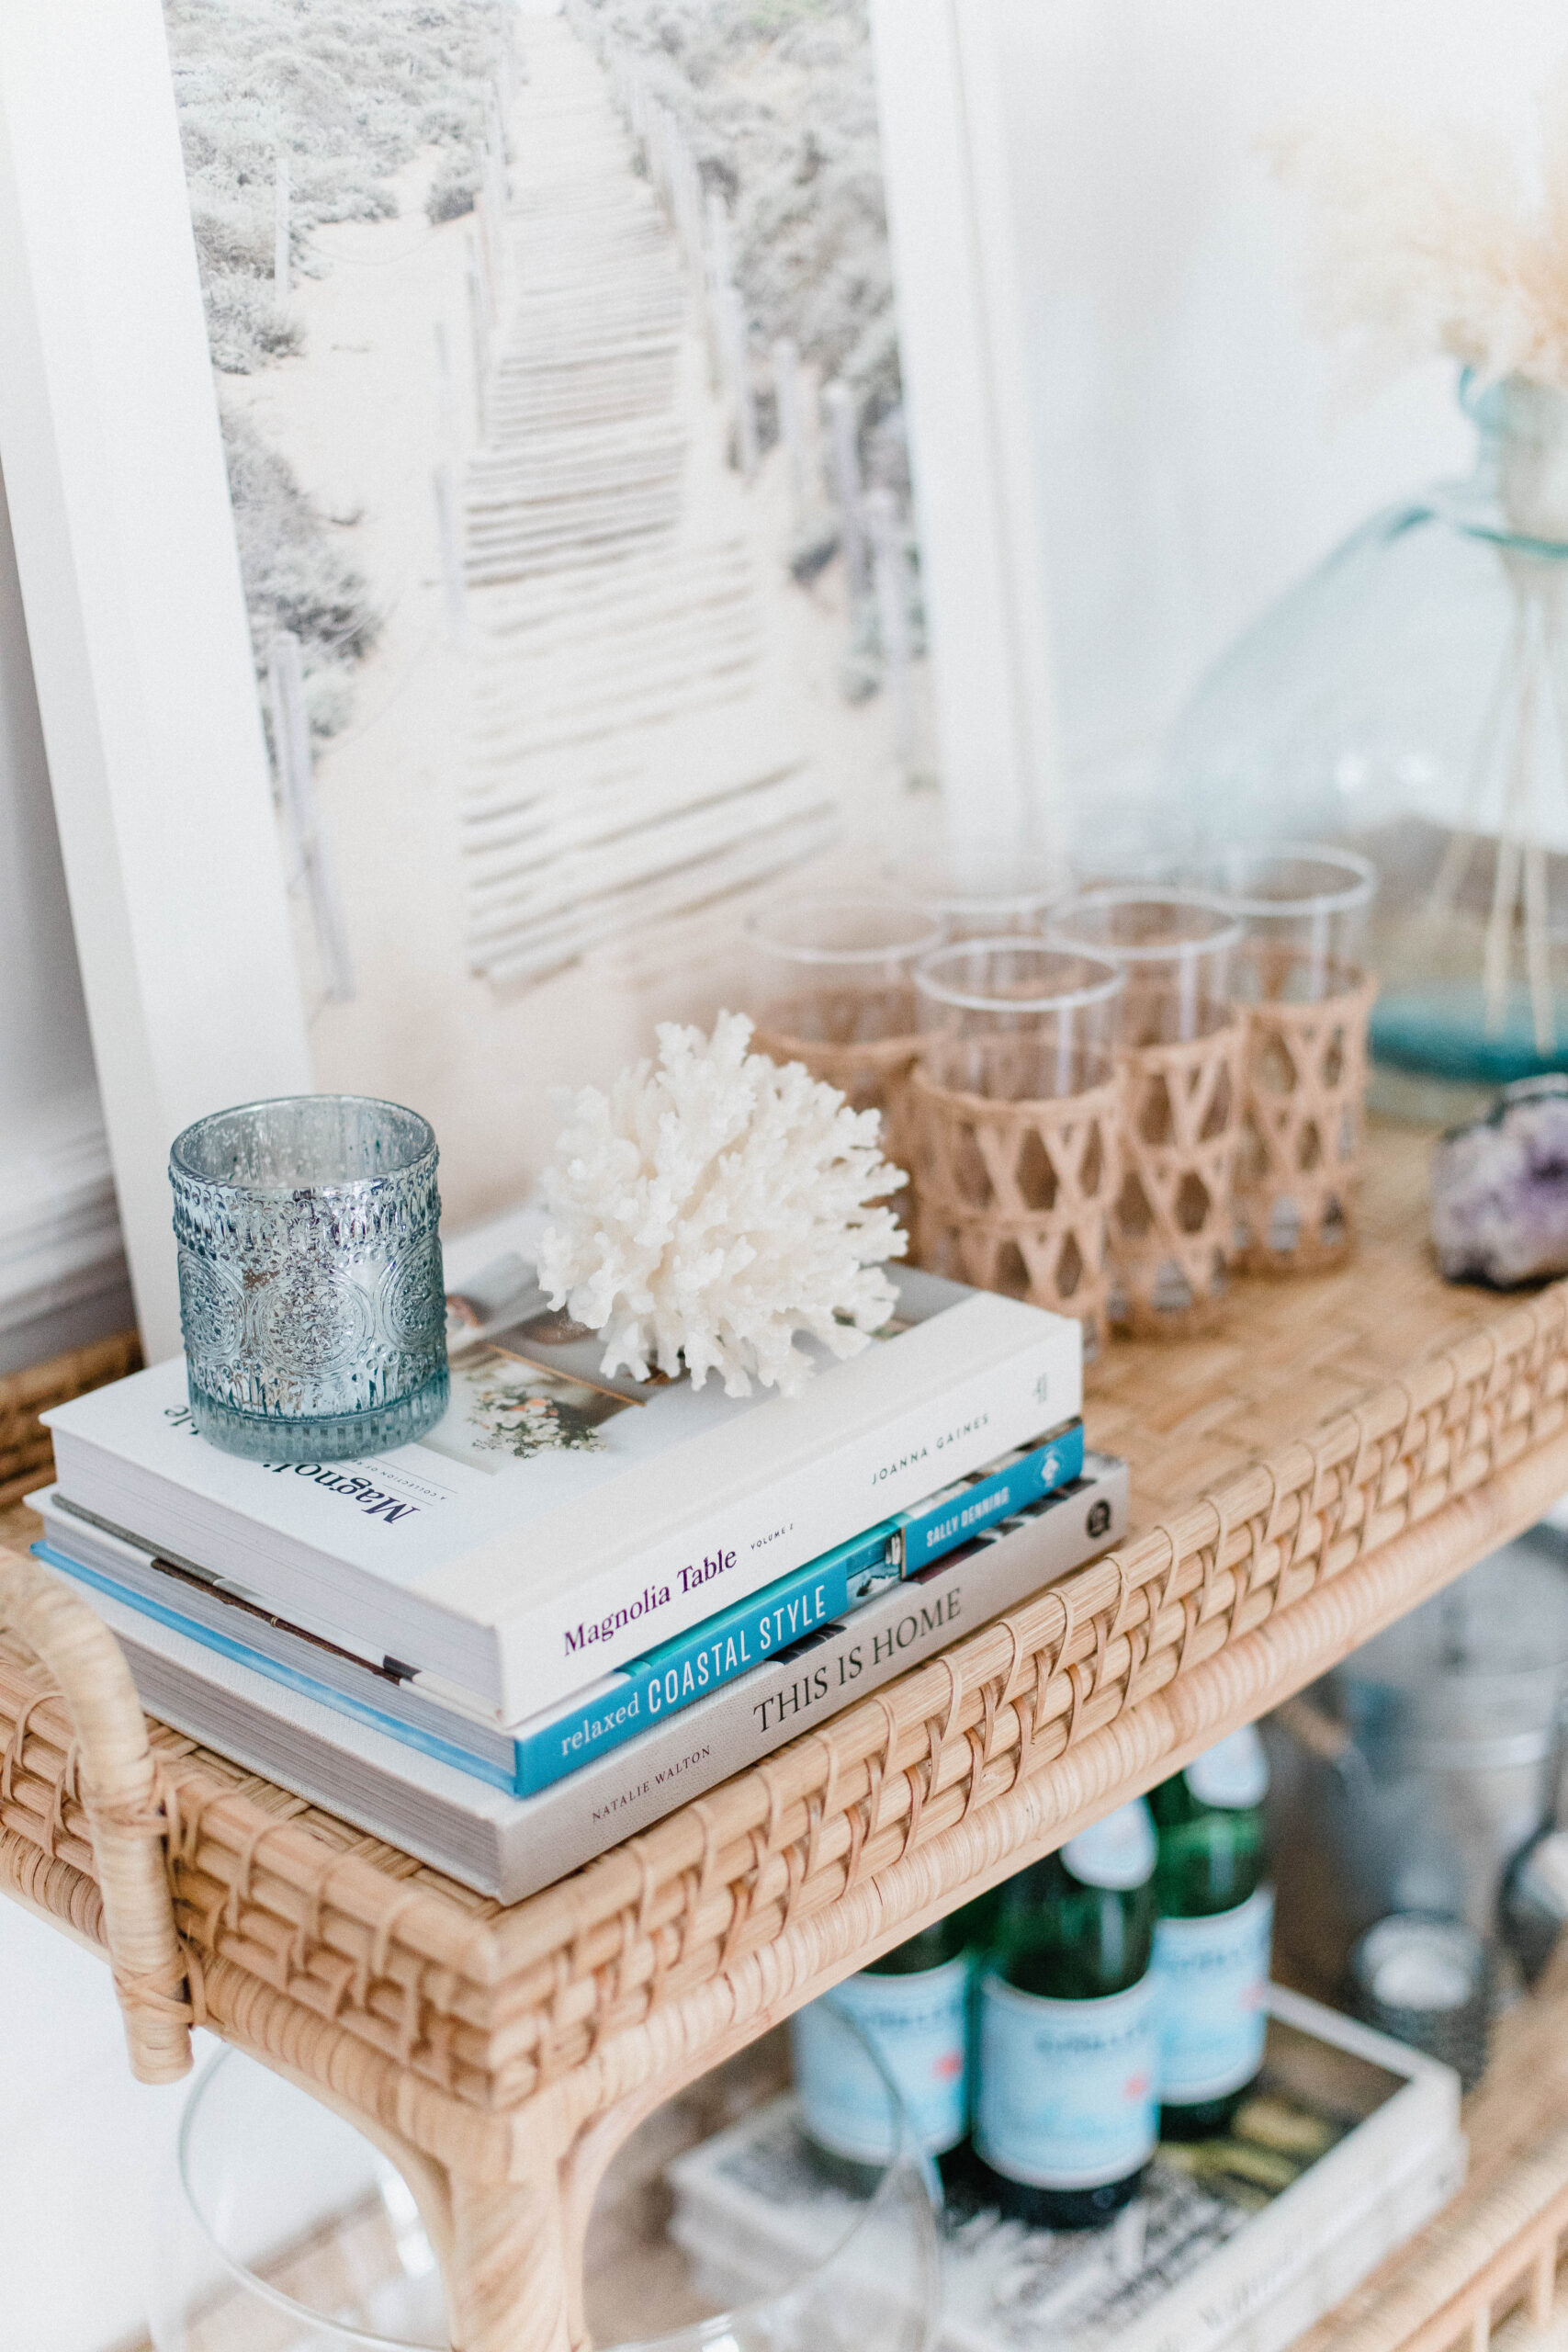 Connecticut life and style blogger Lauren McBride shares her favorite coffee table books that are home and coastal inspired.